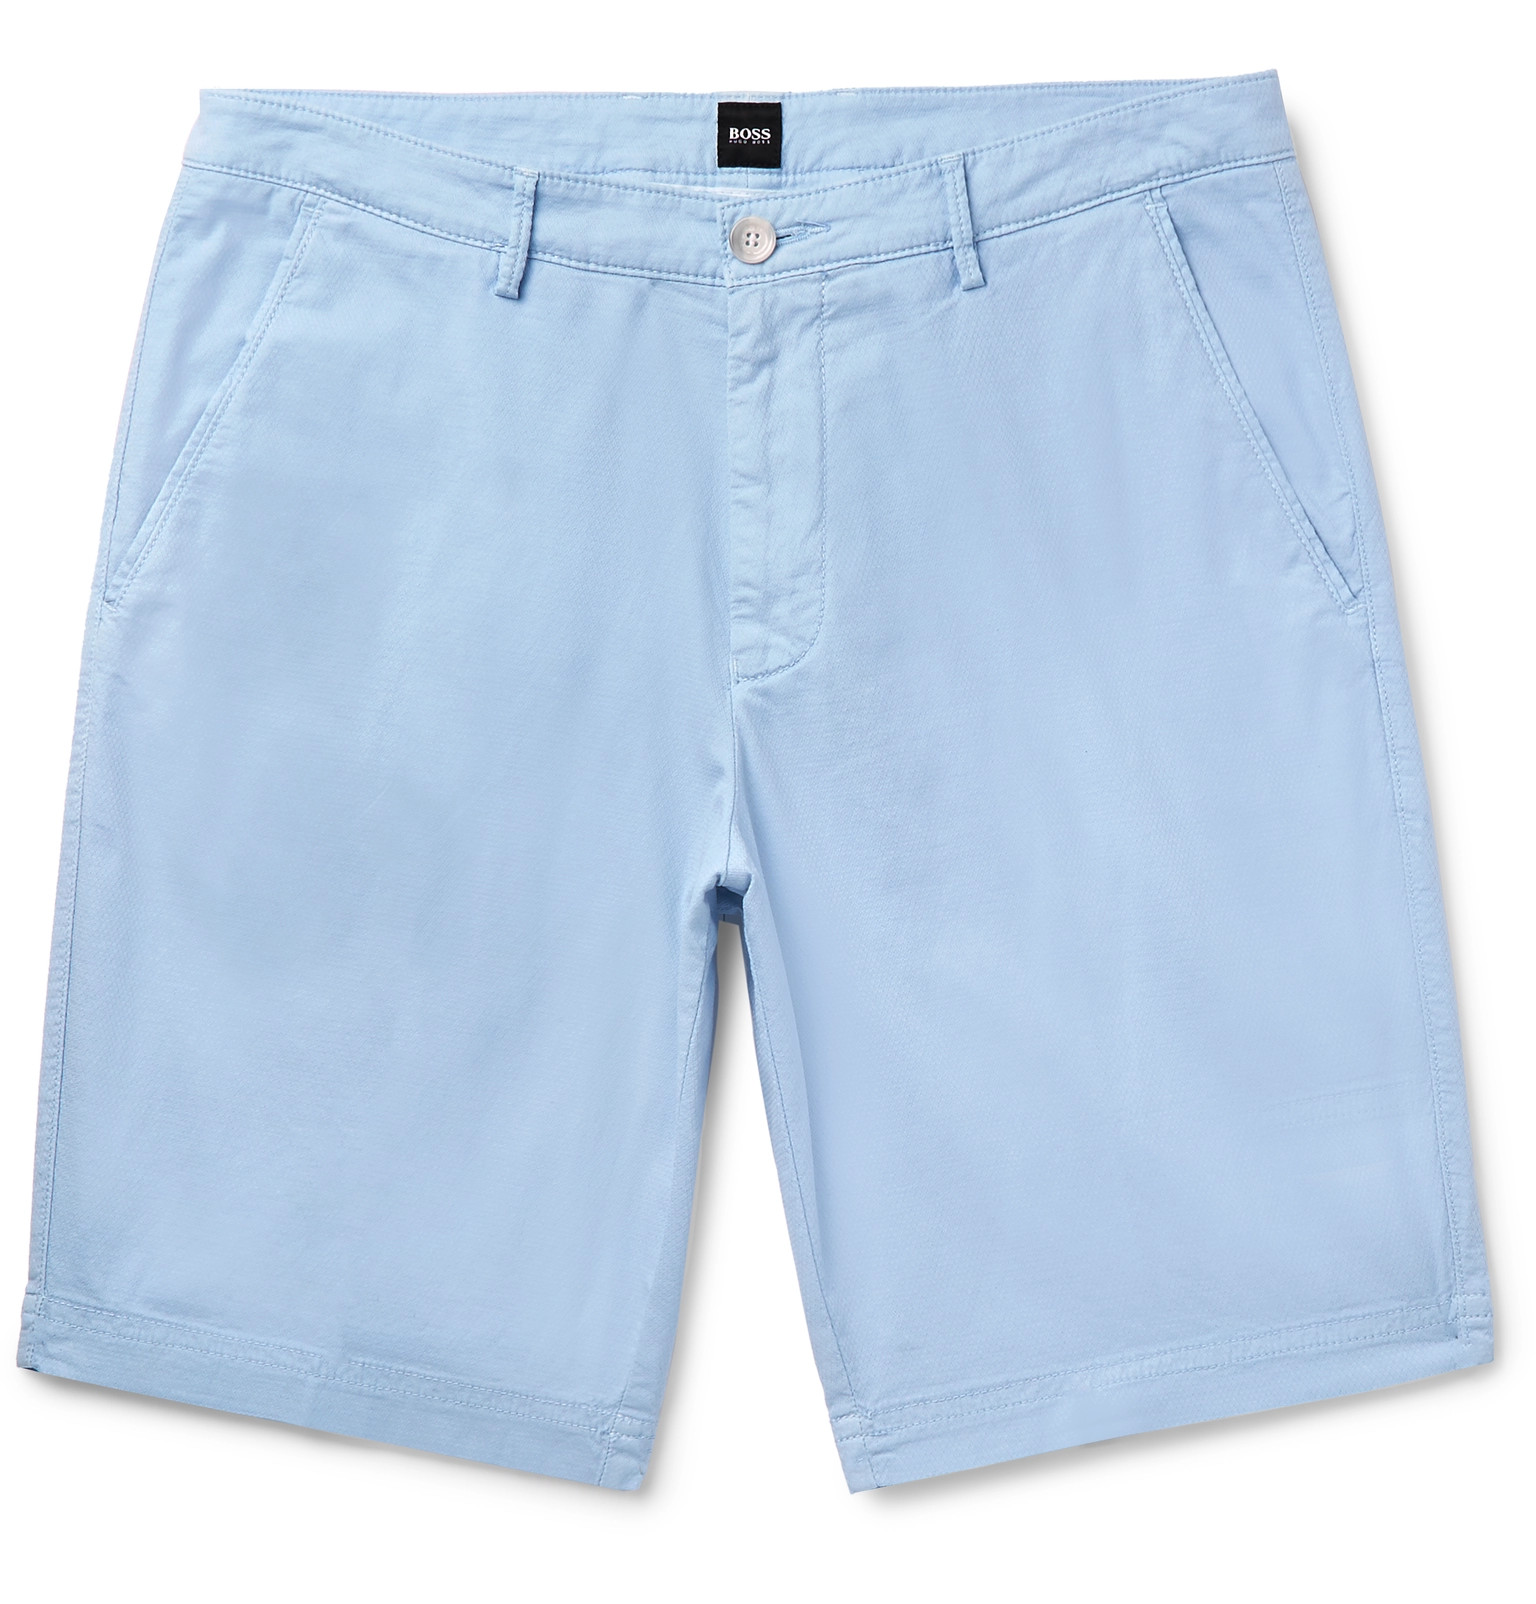 821e92dfc Hugo Boss - Slim-Fit Stretch-Cotton Shorts